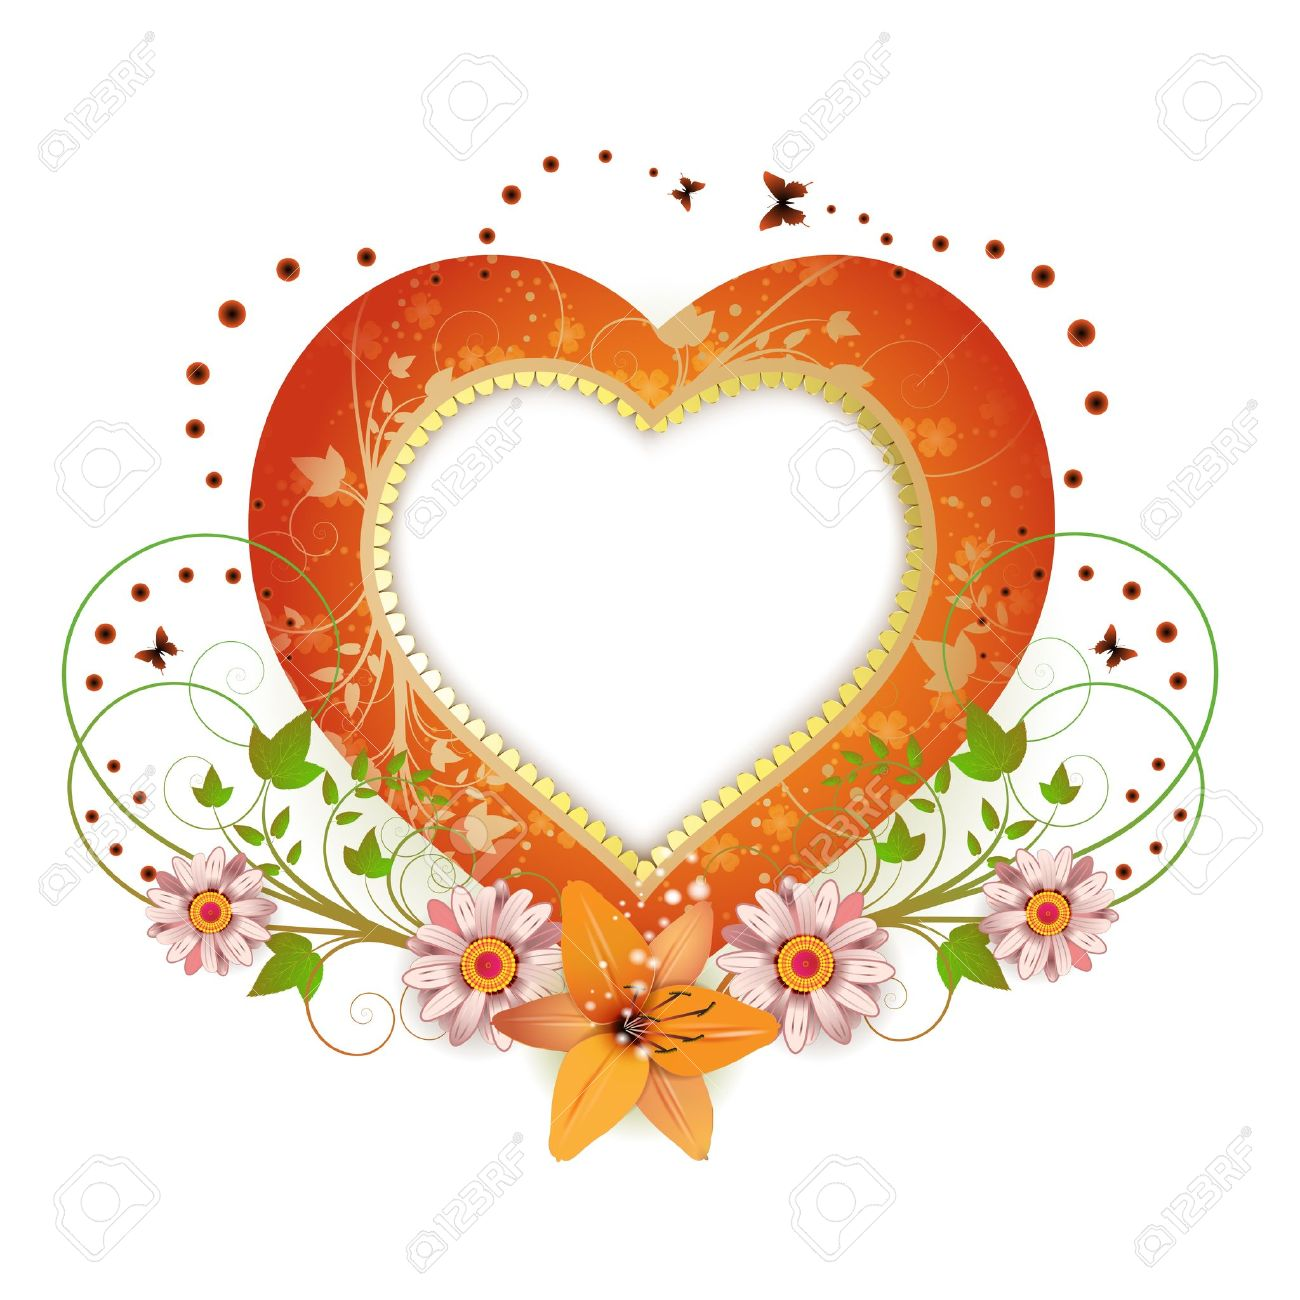 butterfly heart stock photos images. royalty free butterfly heart, Beautiful flower